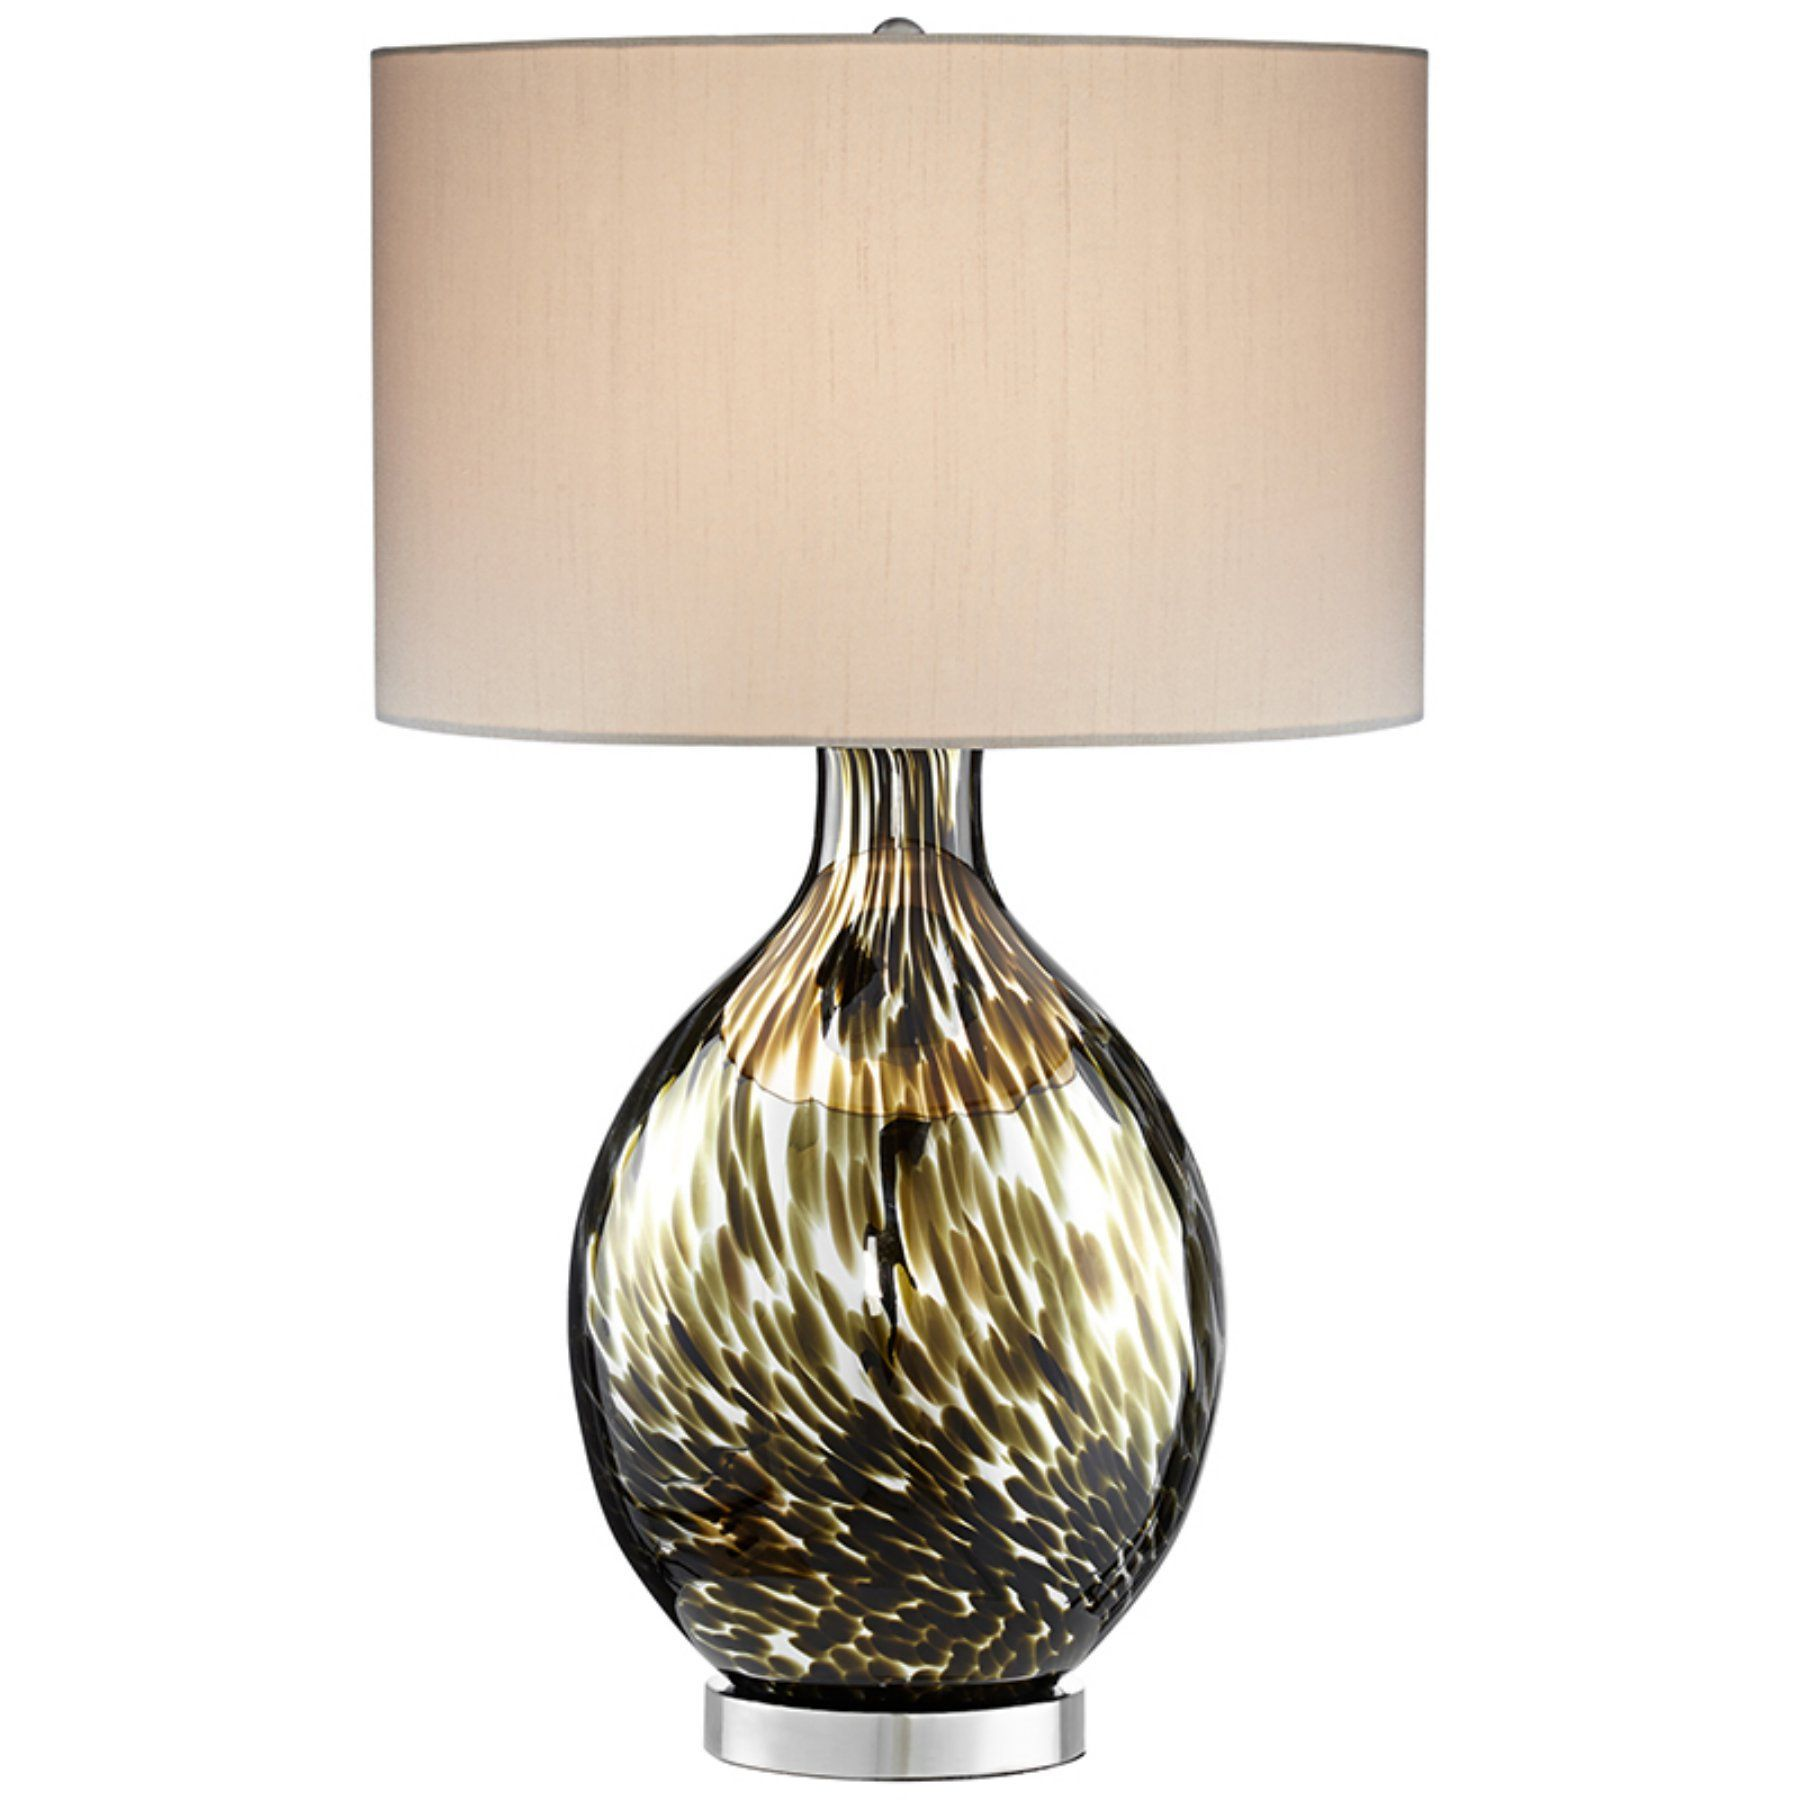 width coast lampspalmier pacific lamp products light lamps lighting palmier threshold table height collection trim item